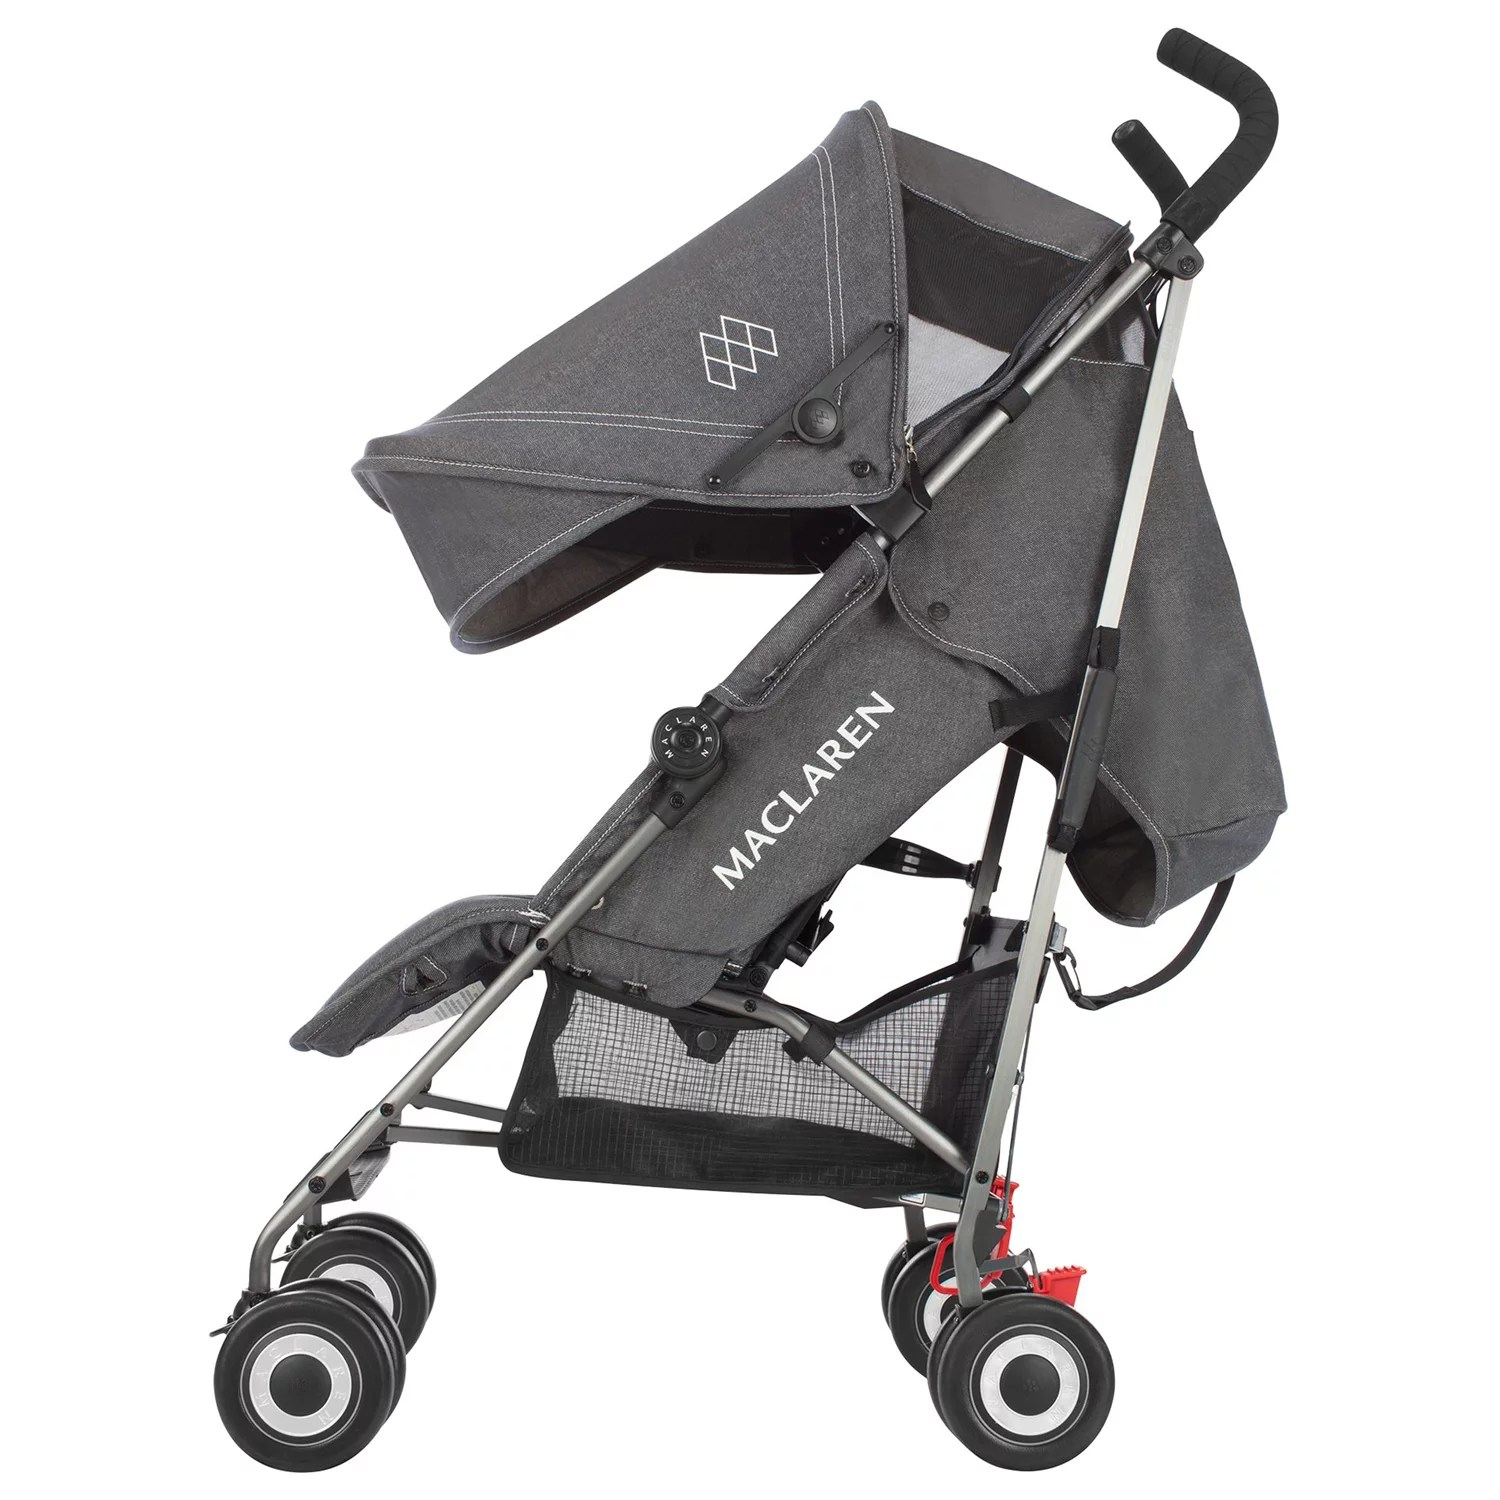 Maclaren Stroller Uk Reviews Maclaren Quest Stroller Denim Charcoal At John Lewis Partners